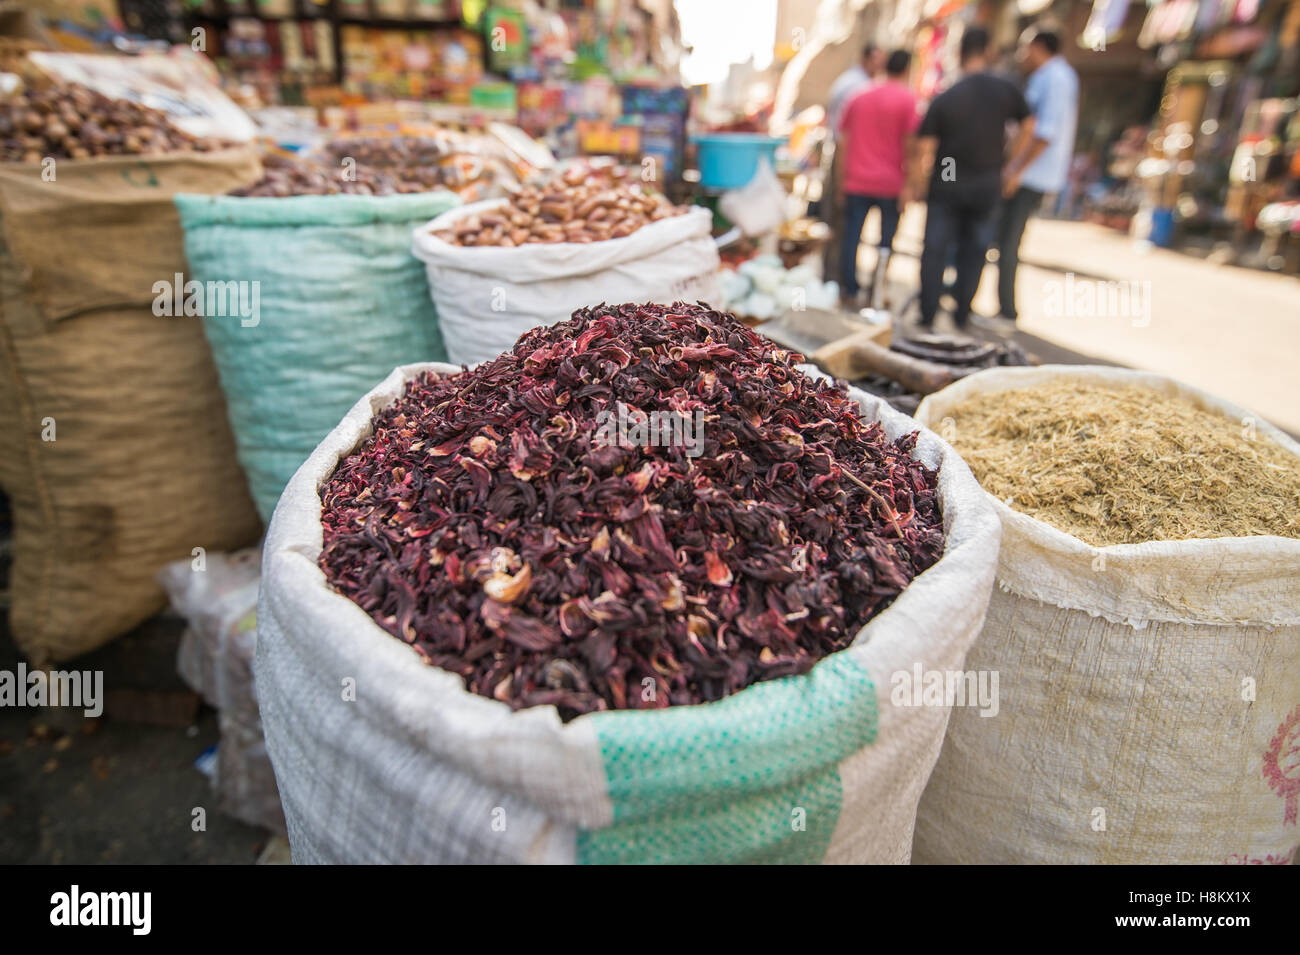 Cairo egypt close up of dried hibiscus for sale in the outdoor close up of dried hibiscus for sale in the outdoor bazaar flea market khan el khalili in cairo izmirmasajfo